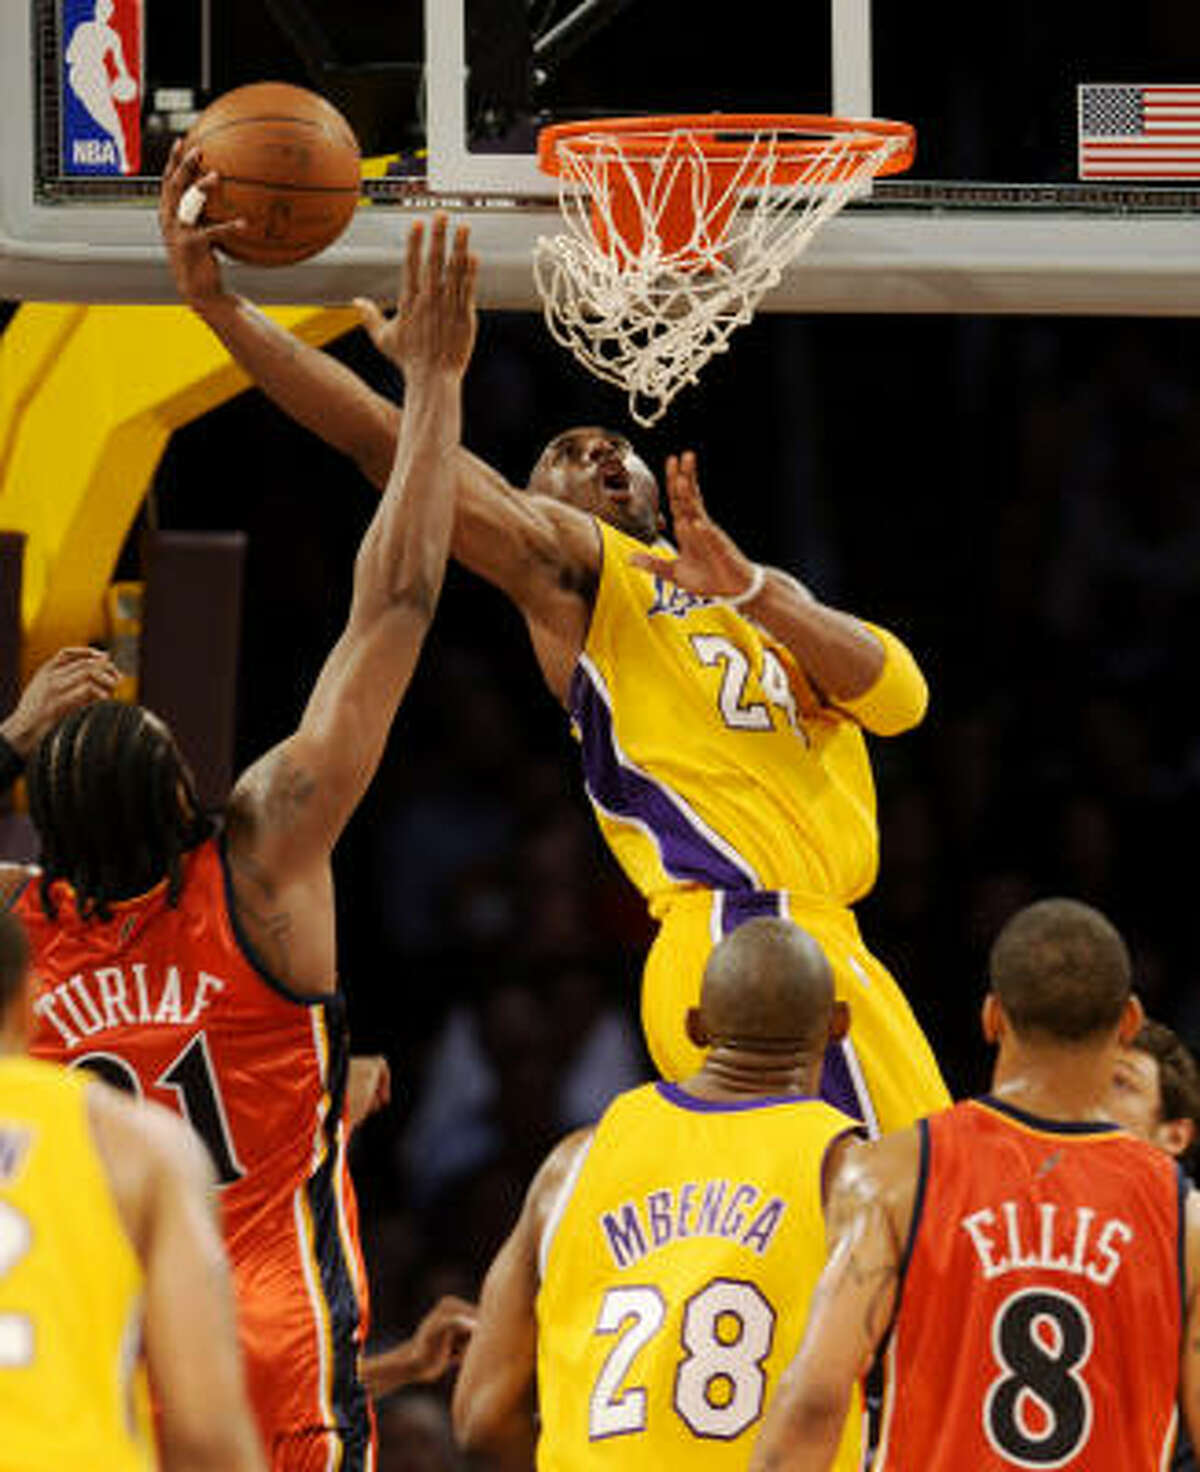 1 - LOS ANGELES LAKERS - (Last rank: 1) - 55-14 - The Lakers seem to be treading water, waiting for the playoffs to arrive to get serious again. But of all the playoff contenders, they have the most to add when Andrew Bynum returns to the lineup and are still the team to beat in the West.